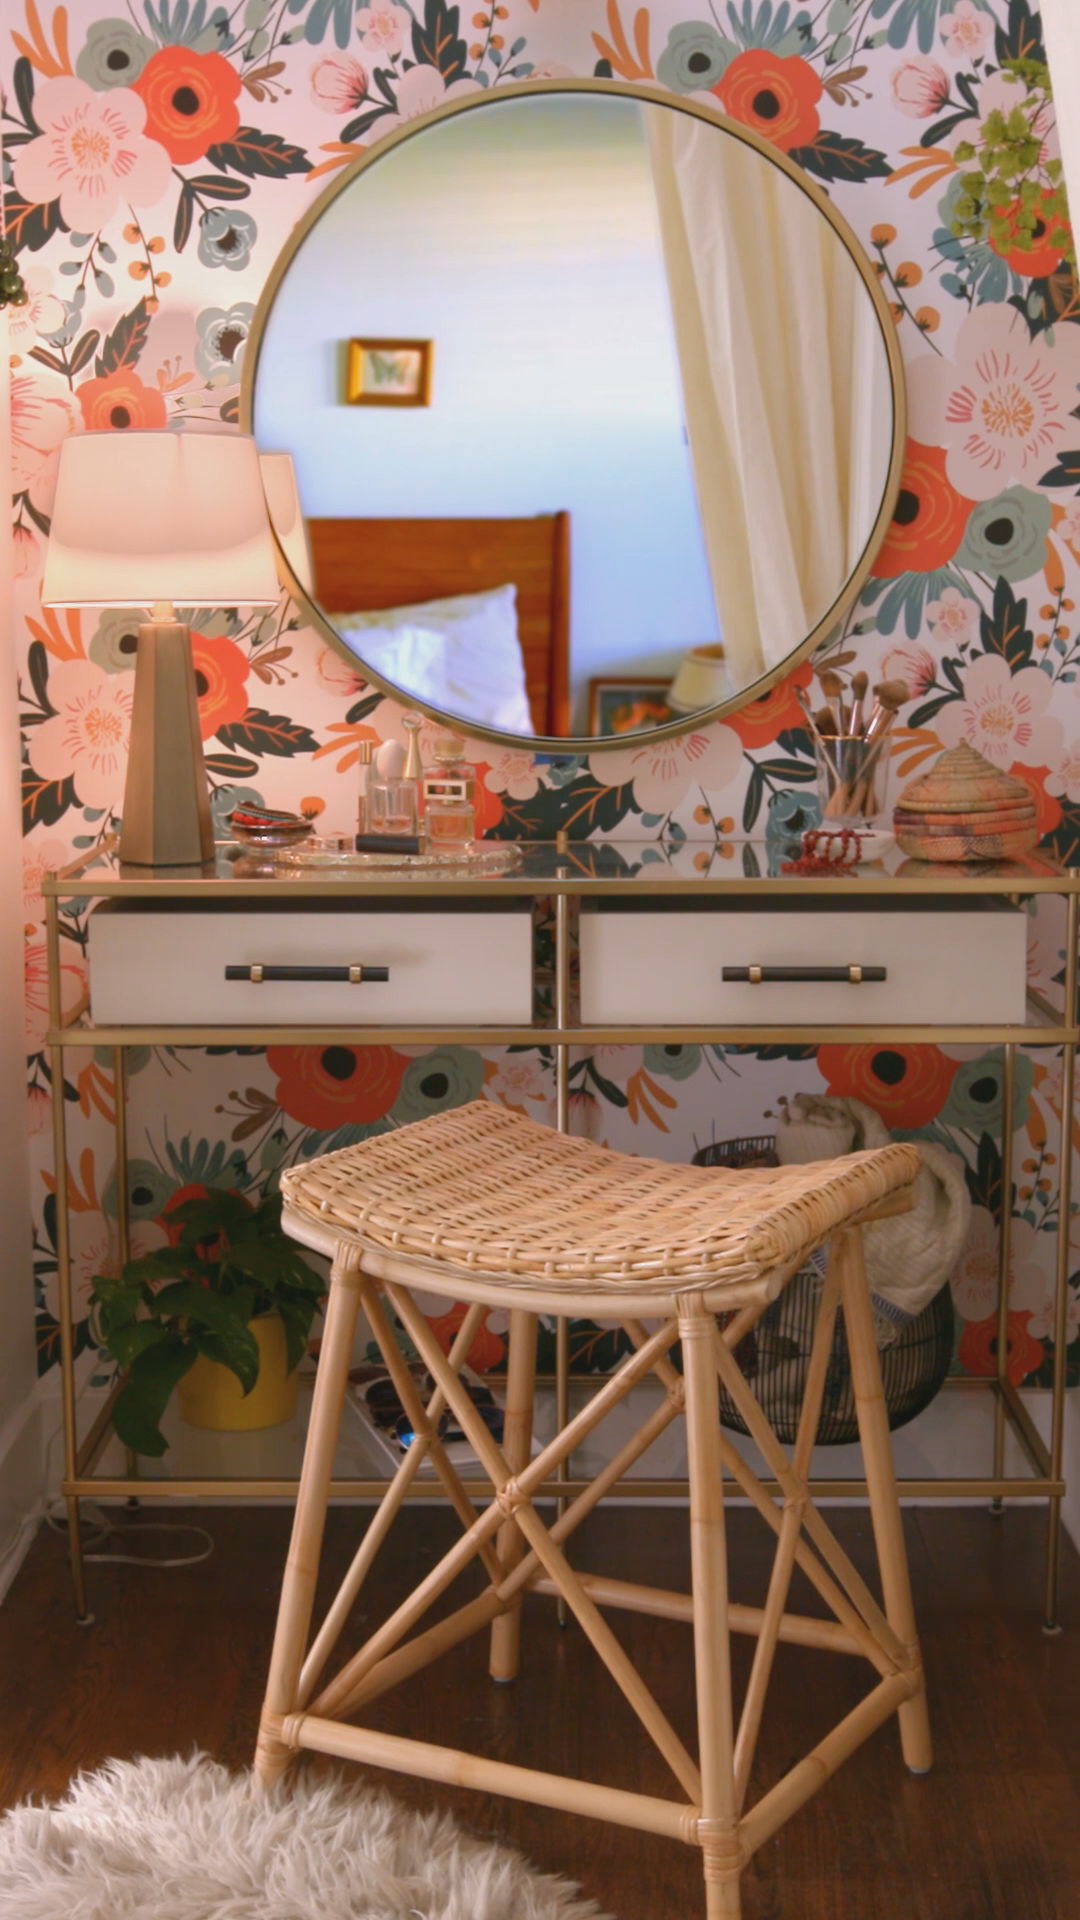 From an unorganized storage space to a stylish makeup station, see how we transformed this tiny nook with some statement-making wallpaper and chic finishing touches.